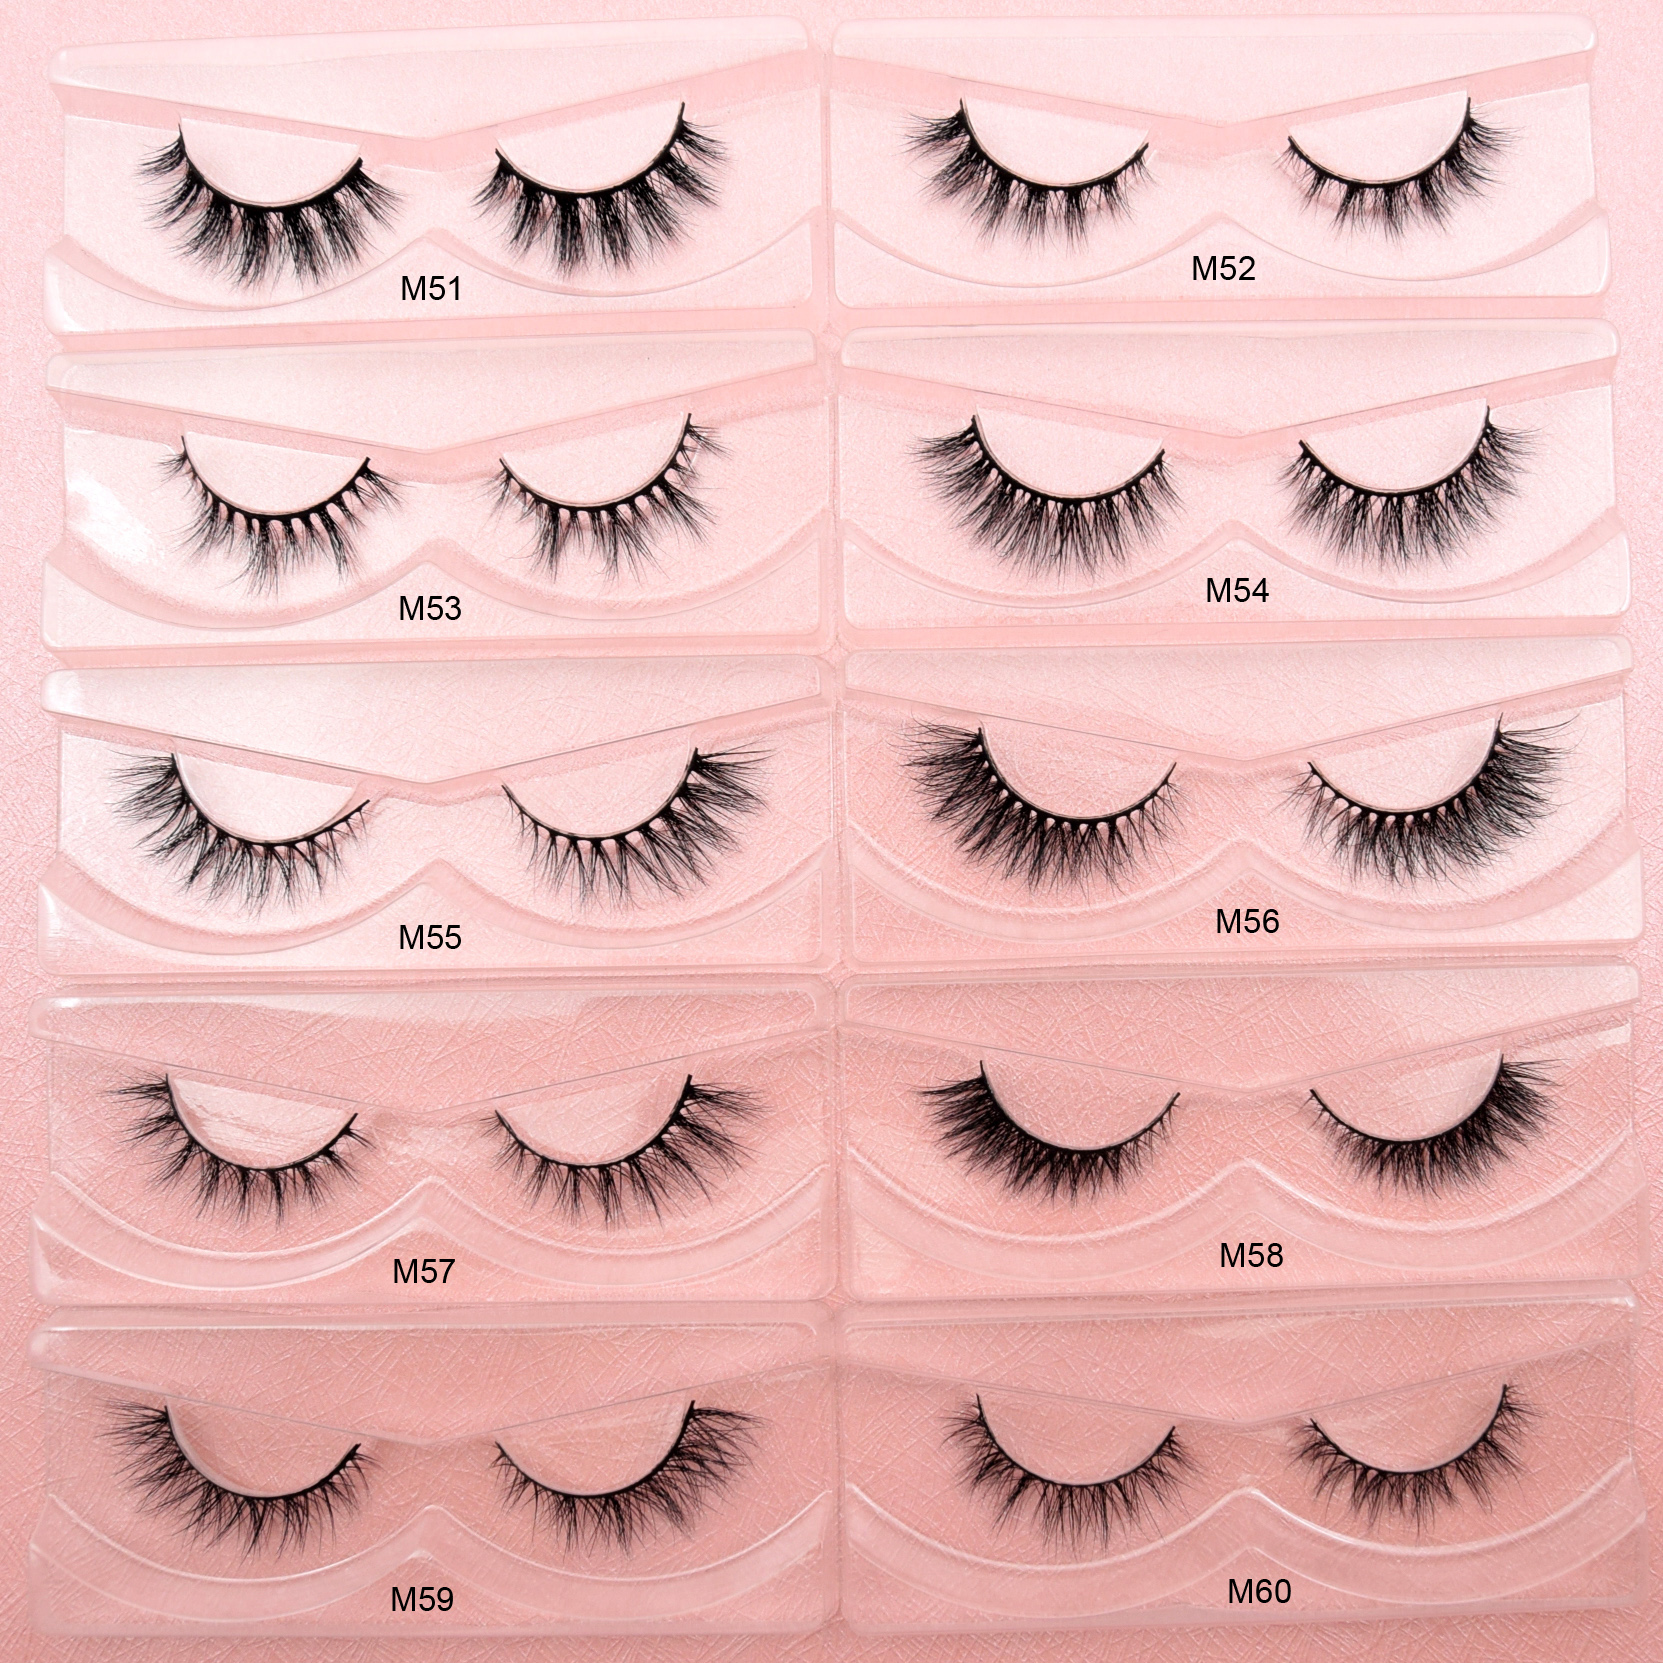 Visofree Mink Eyelashes 3D Mink Lashes Winged HandMade Full Strip Lashes Cruelty Free Mink Lashes False Eyelashes Makeup Tools